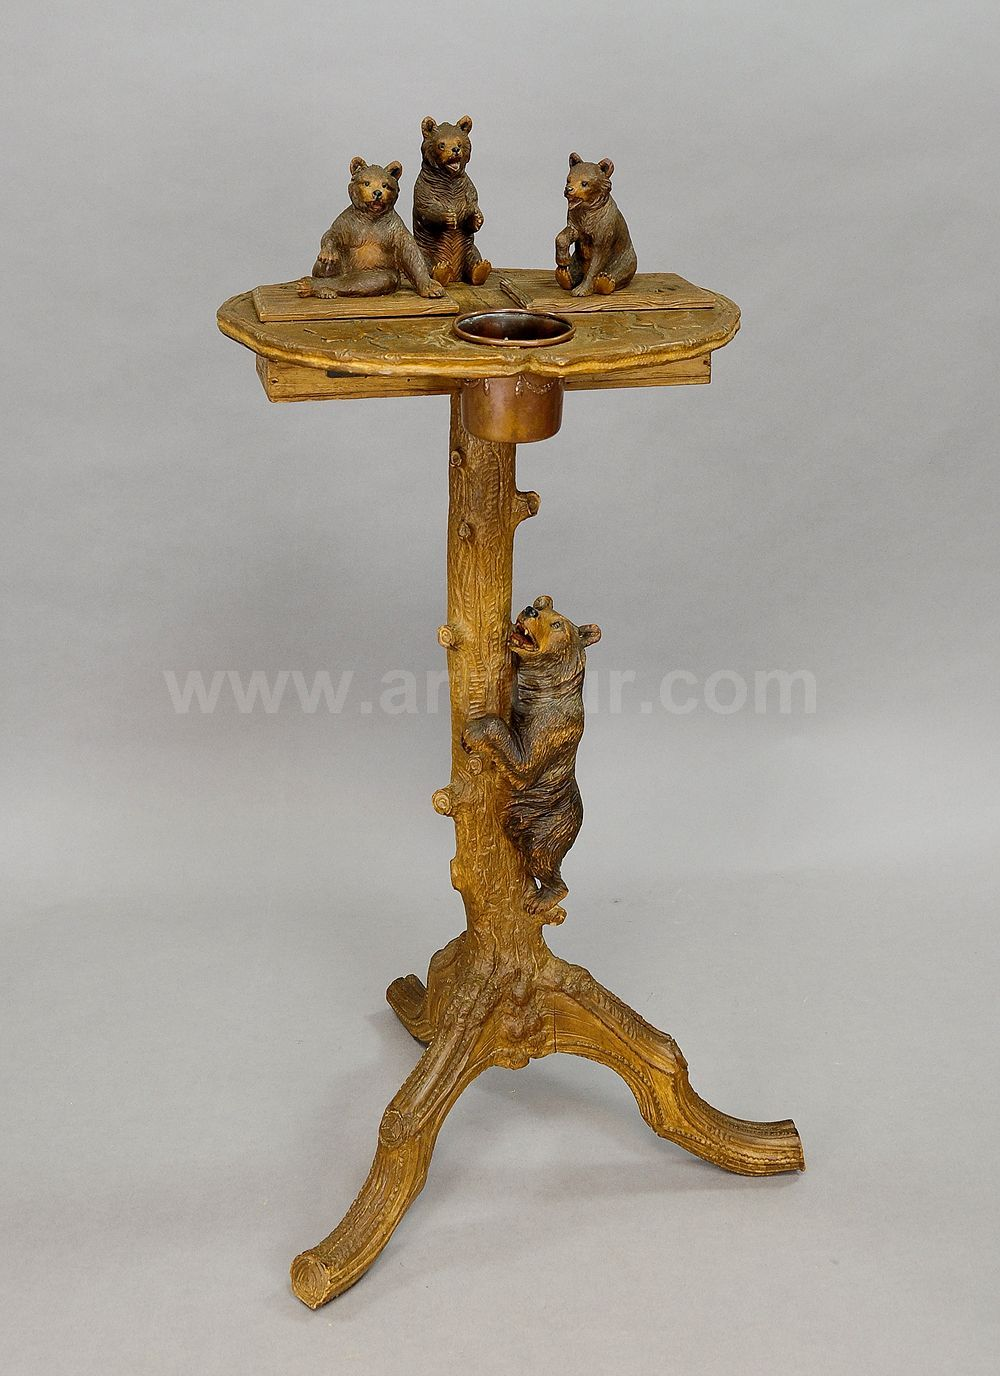 A Fantastic Carved Smoking Side Table With Bears Antique Black